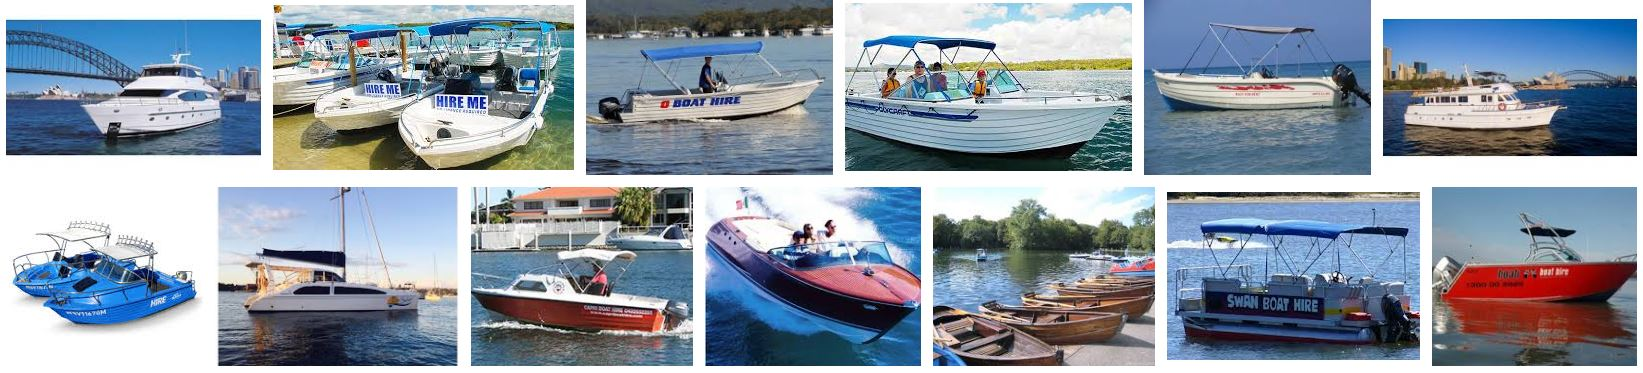 Lake Macquarie Boat Hire